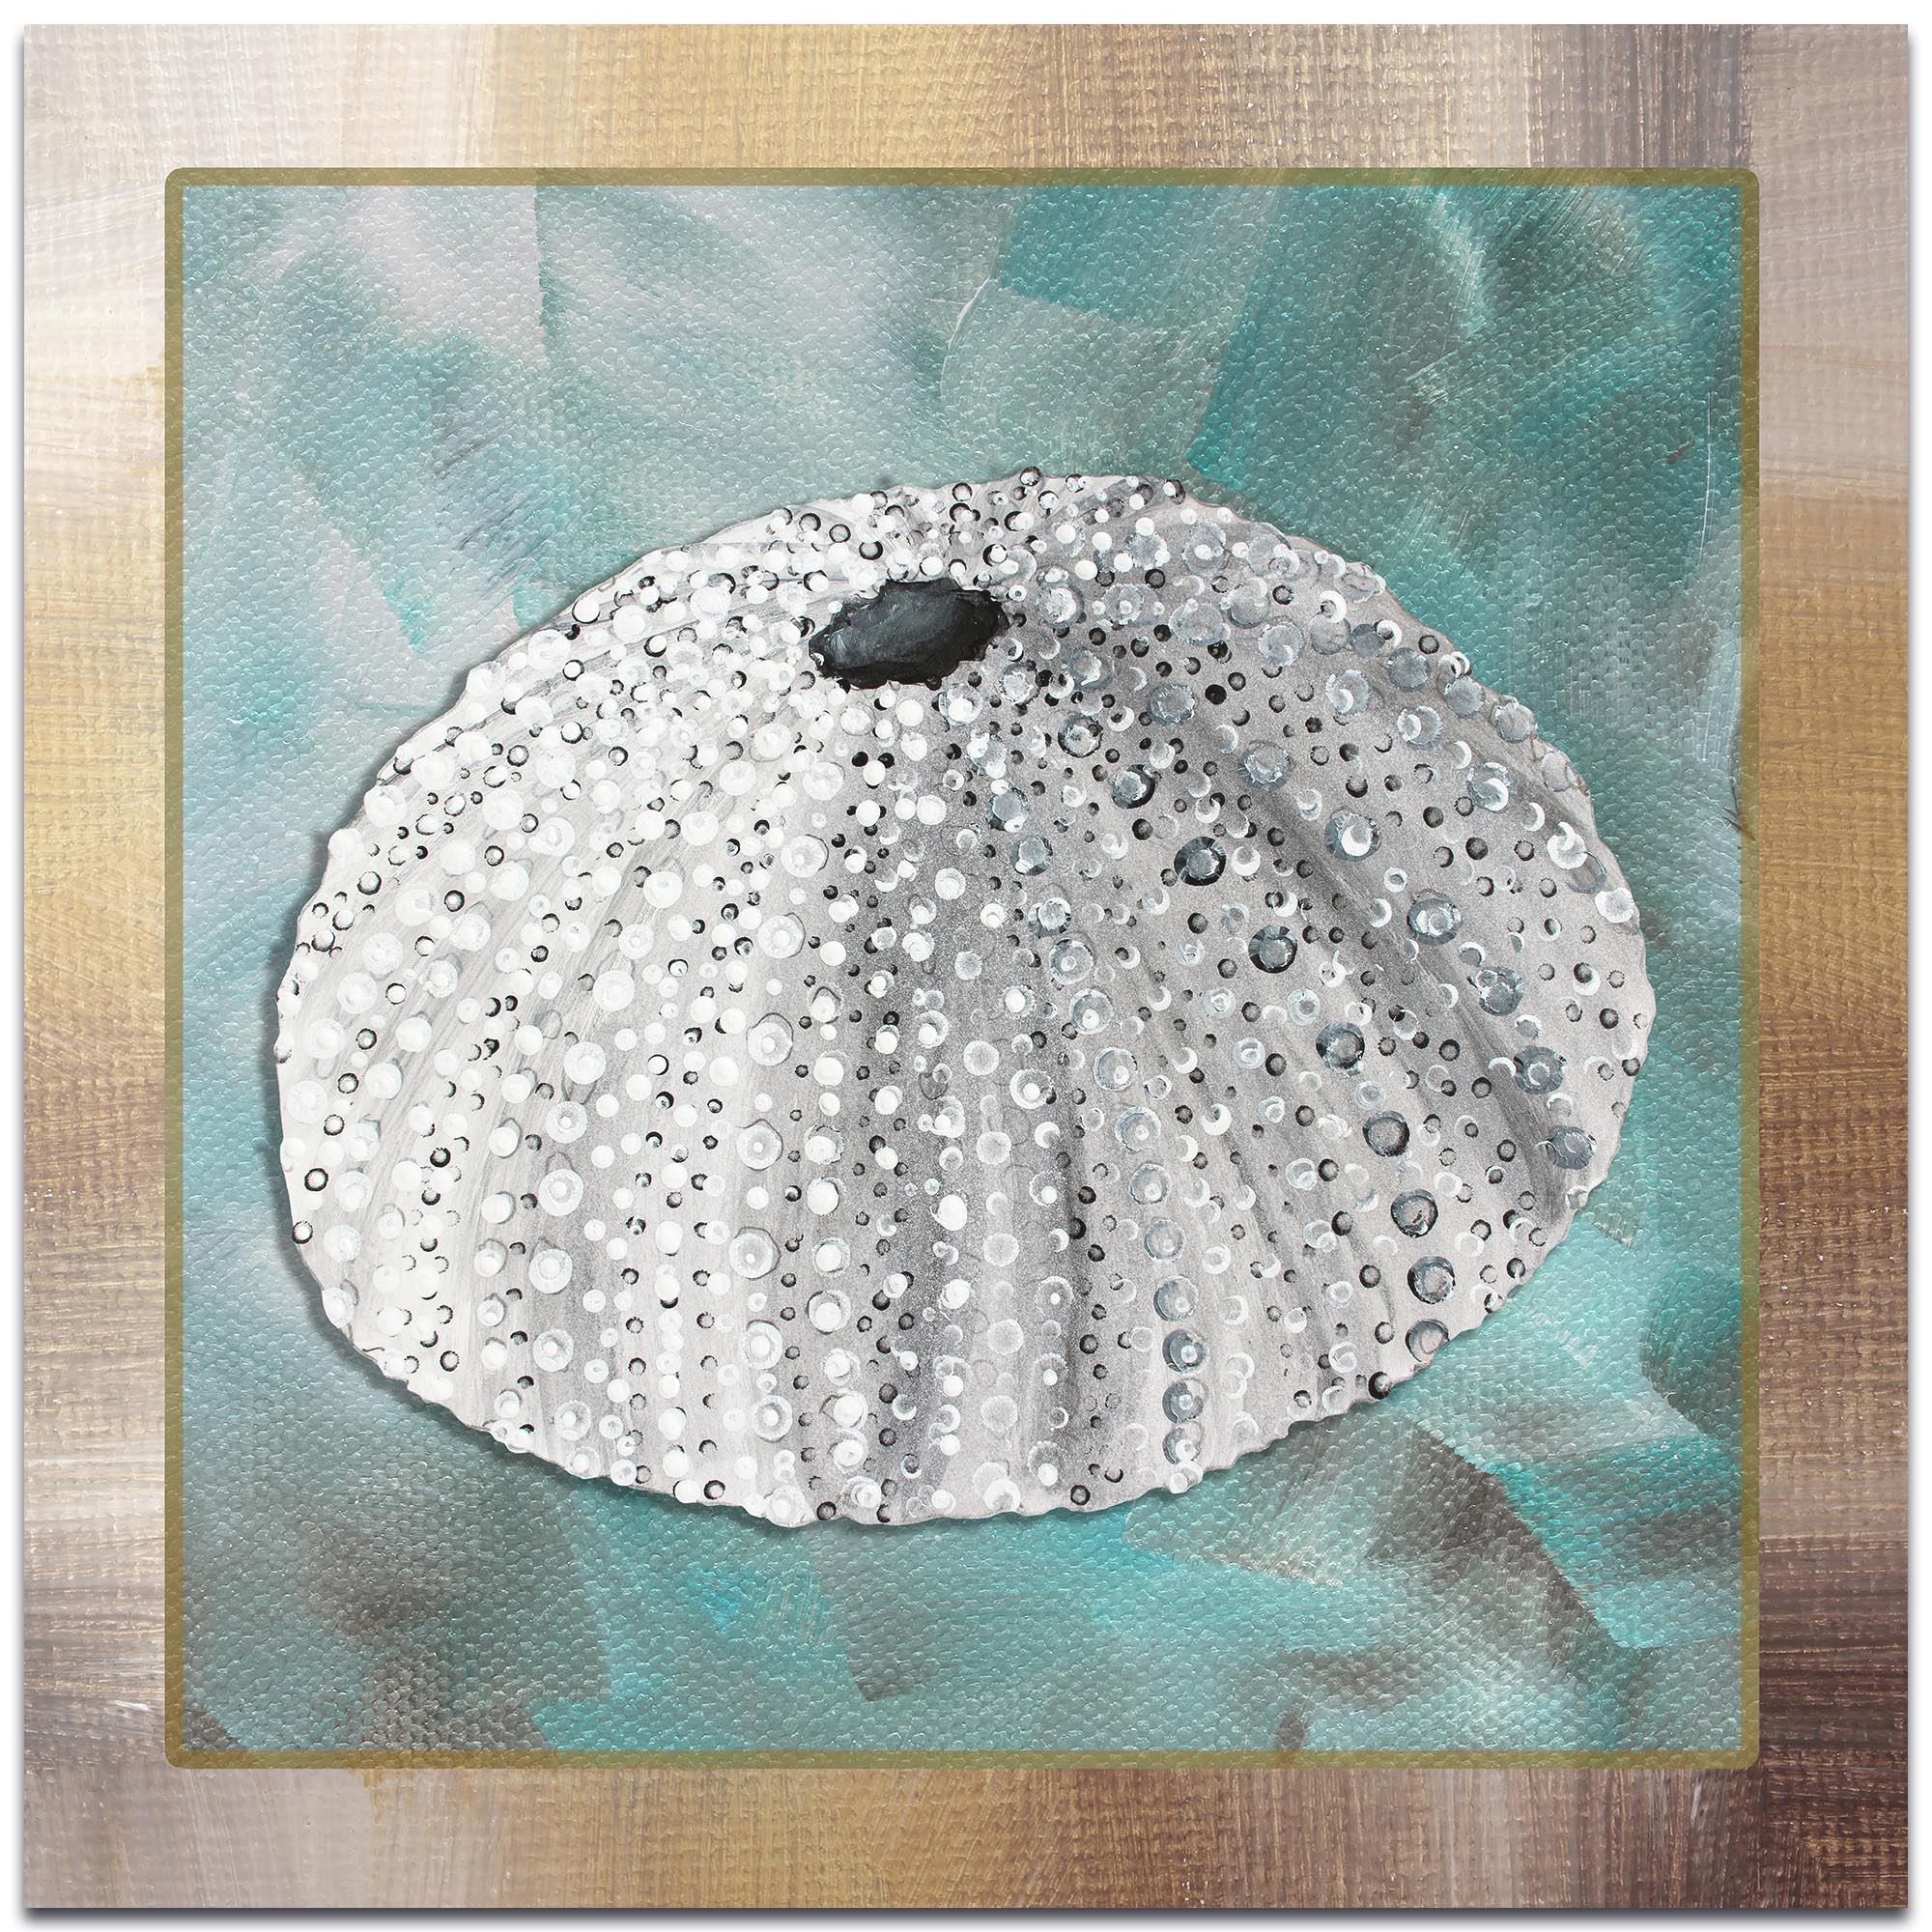 Beach Decor 'Silver Lining Sea Urchin' - Coastal Bathroom Art on Metal or Acrylic